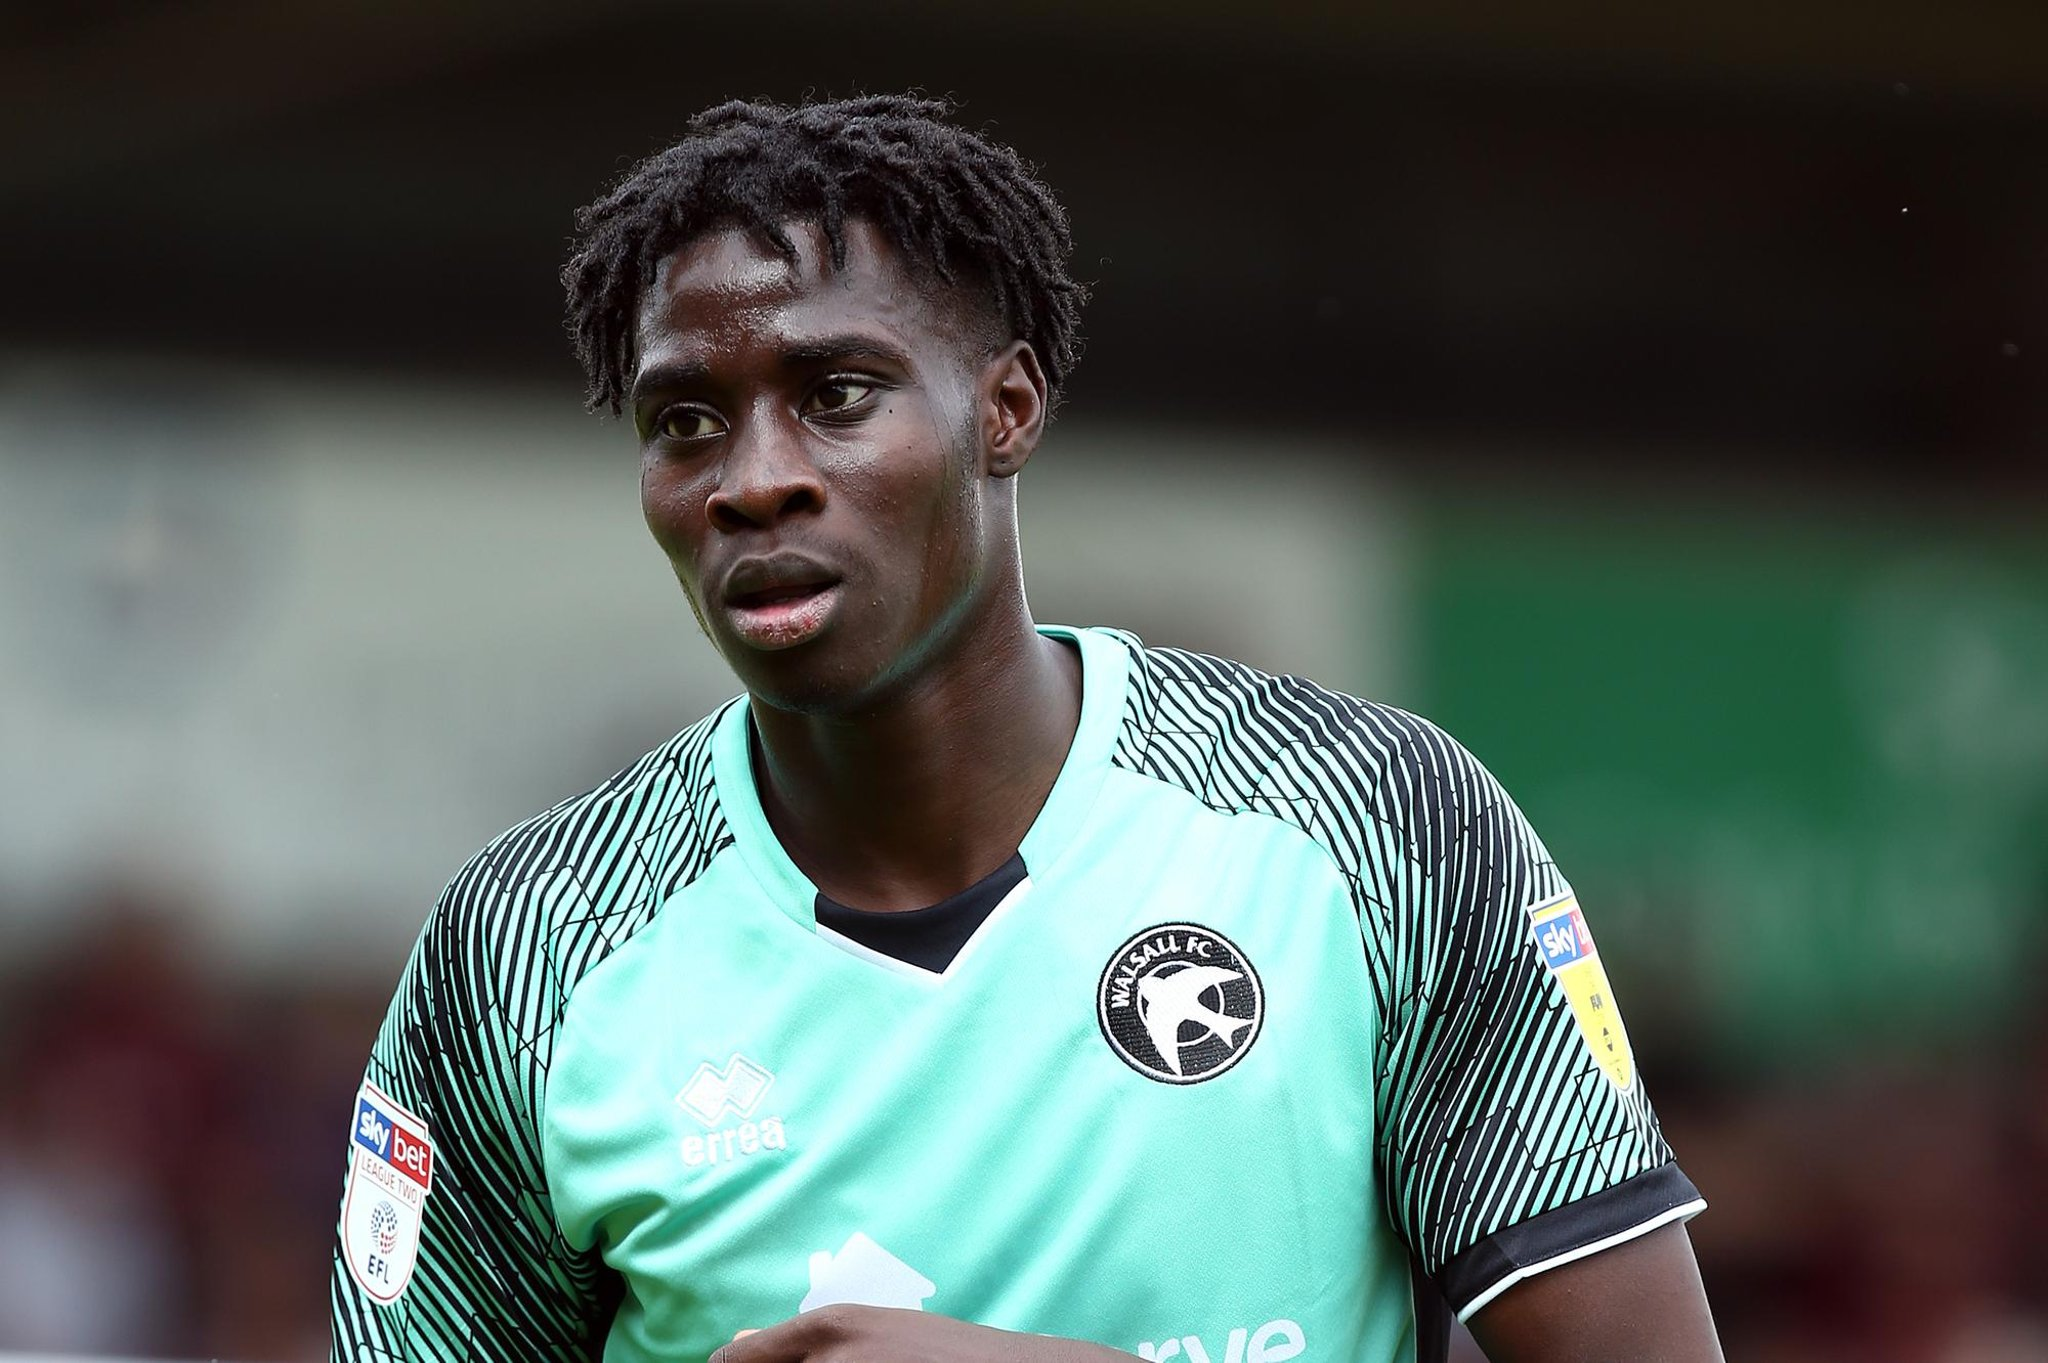 FIFA rule change means Hearts face a six-figure fee for Walsall's Elijah Adebayo - even if he signs as a free agent in summer